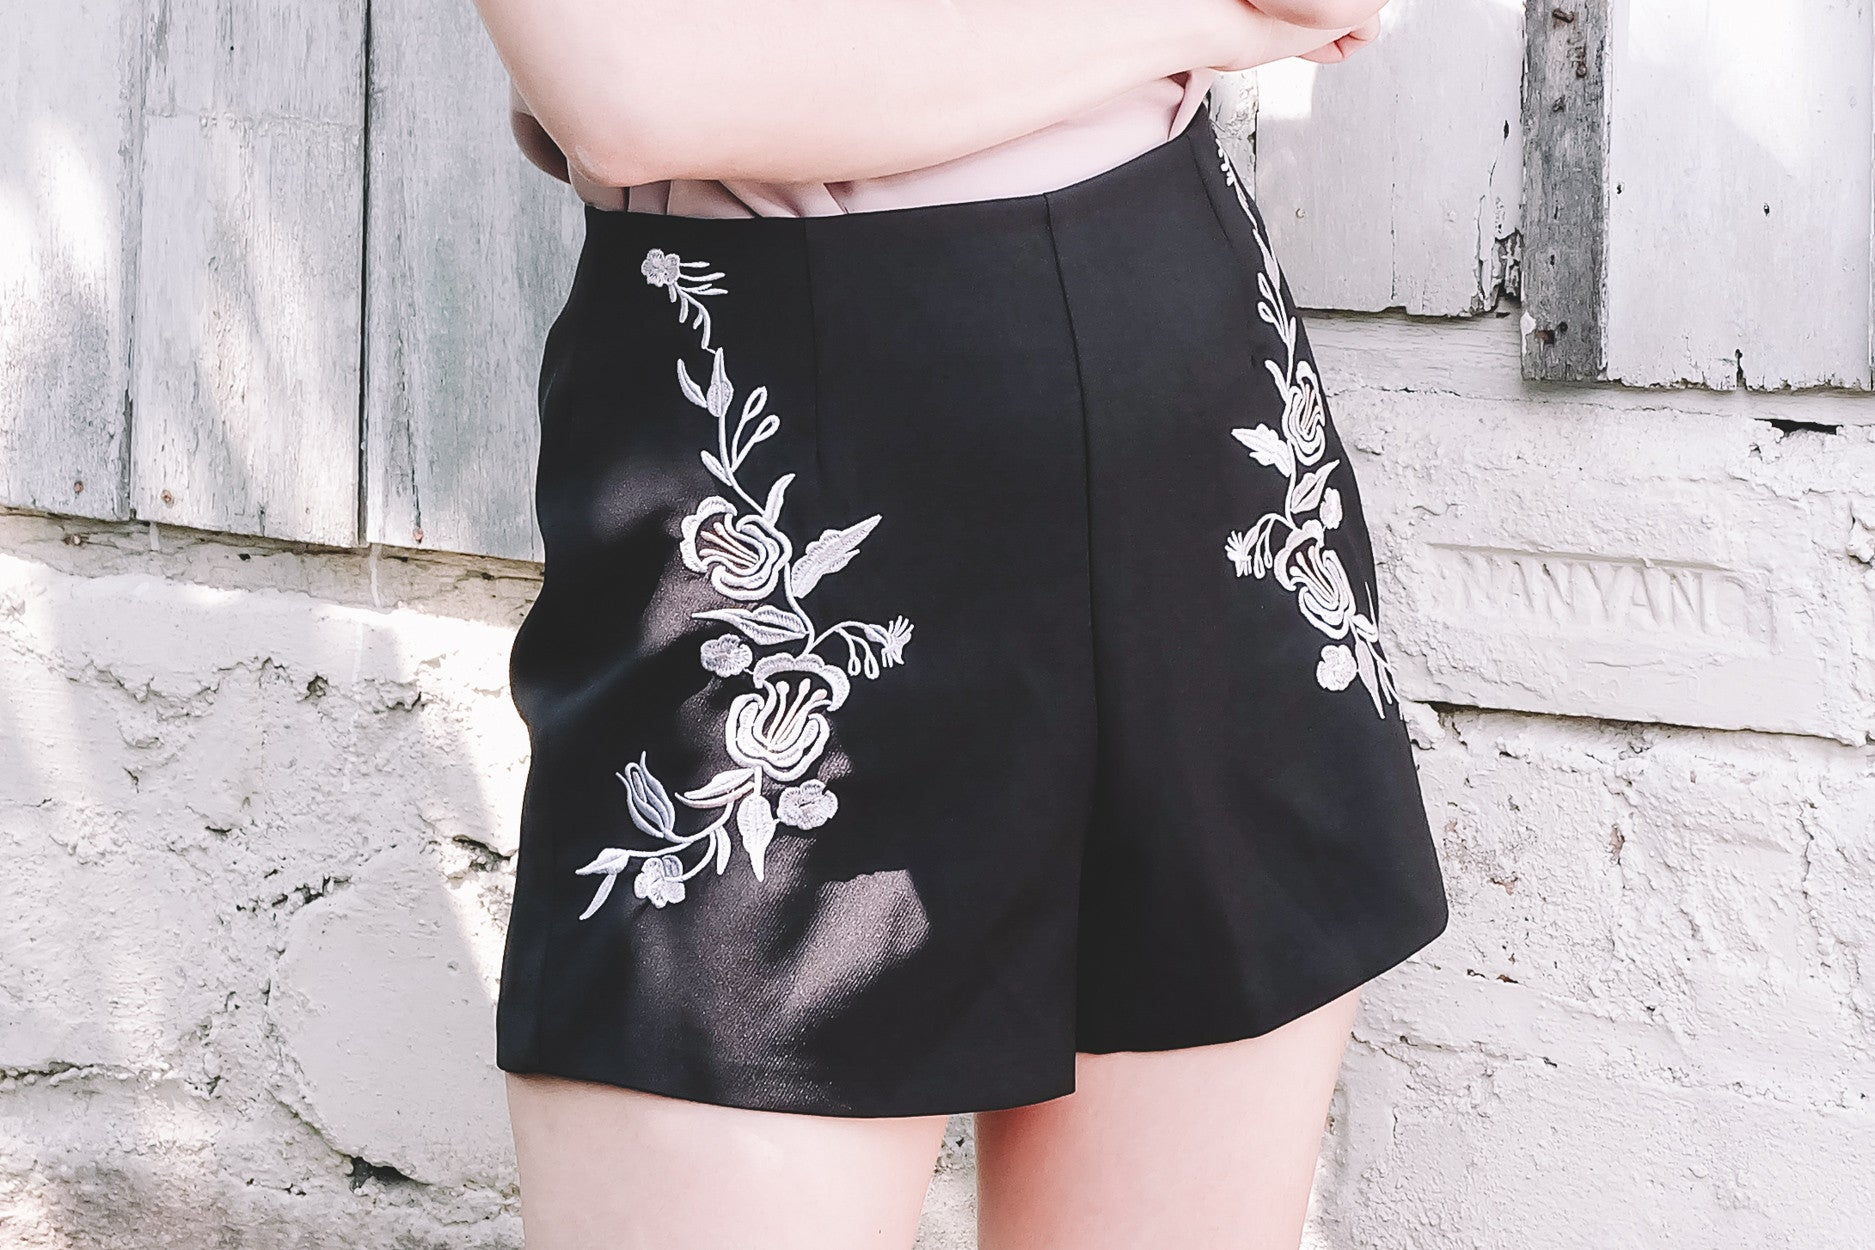 Floral Embroidered Shorts in Black